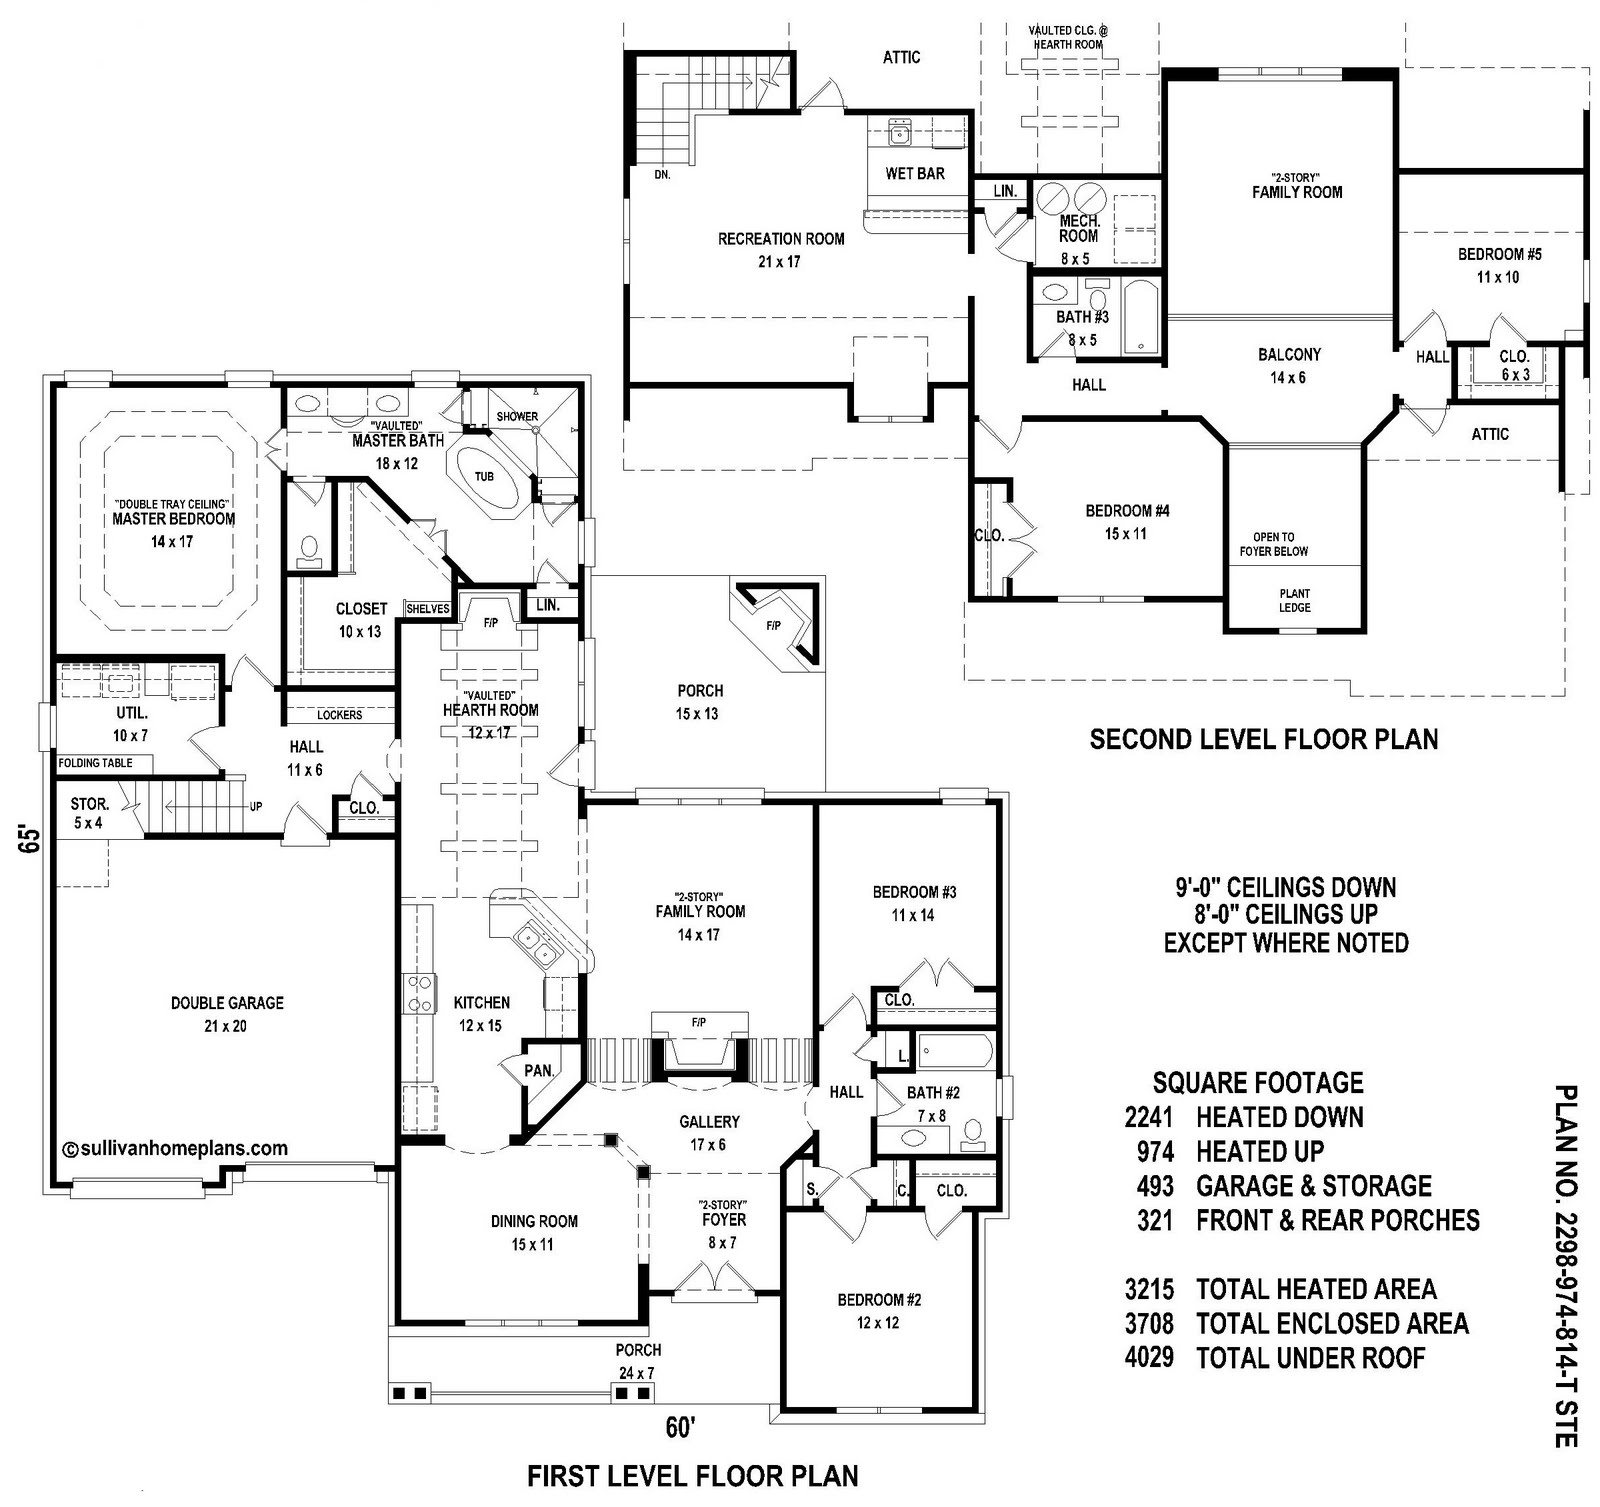 Sullivan home plans june 2010 for 5 bedroom house plan designs